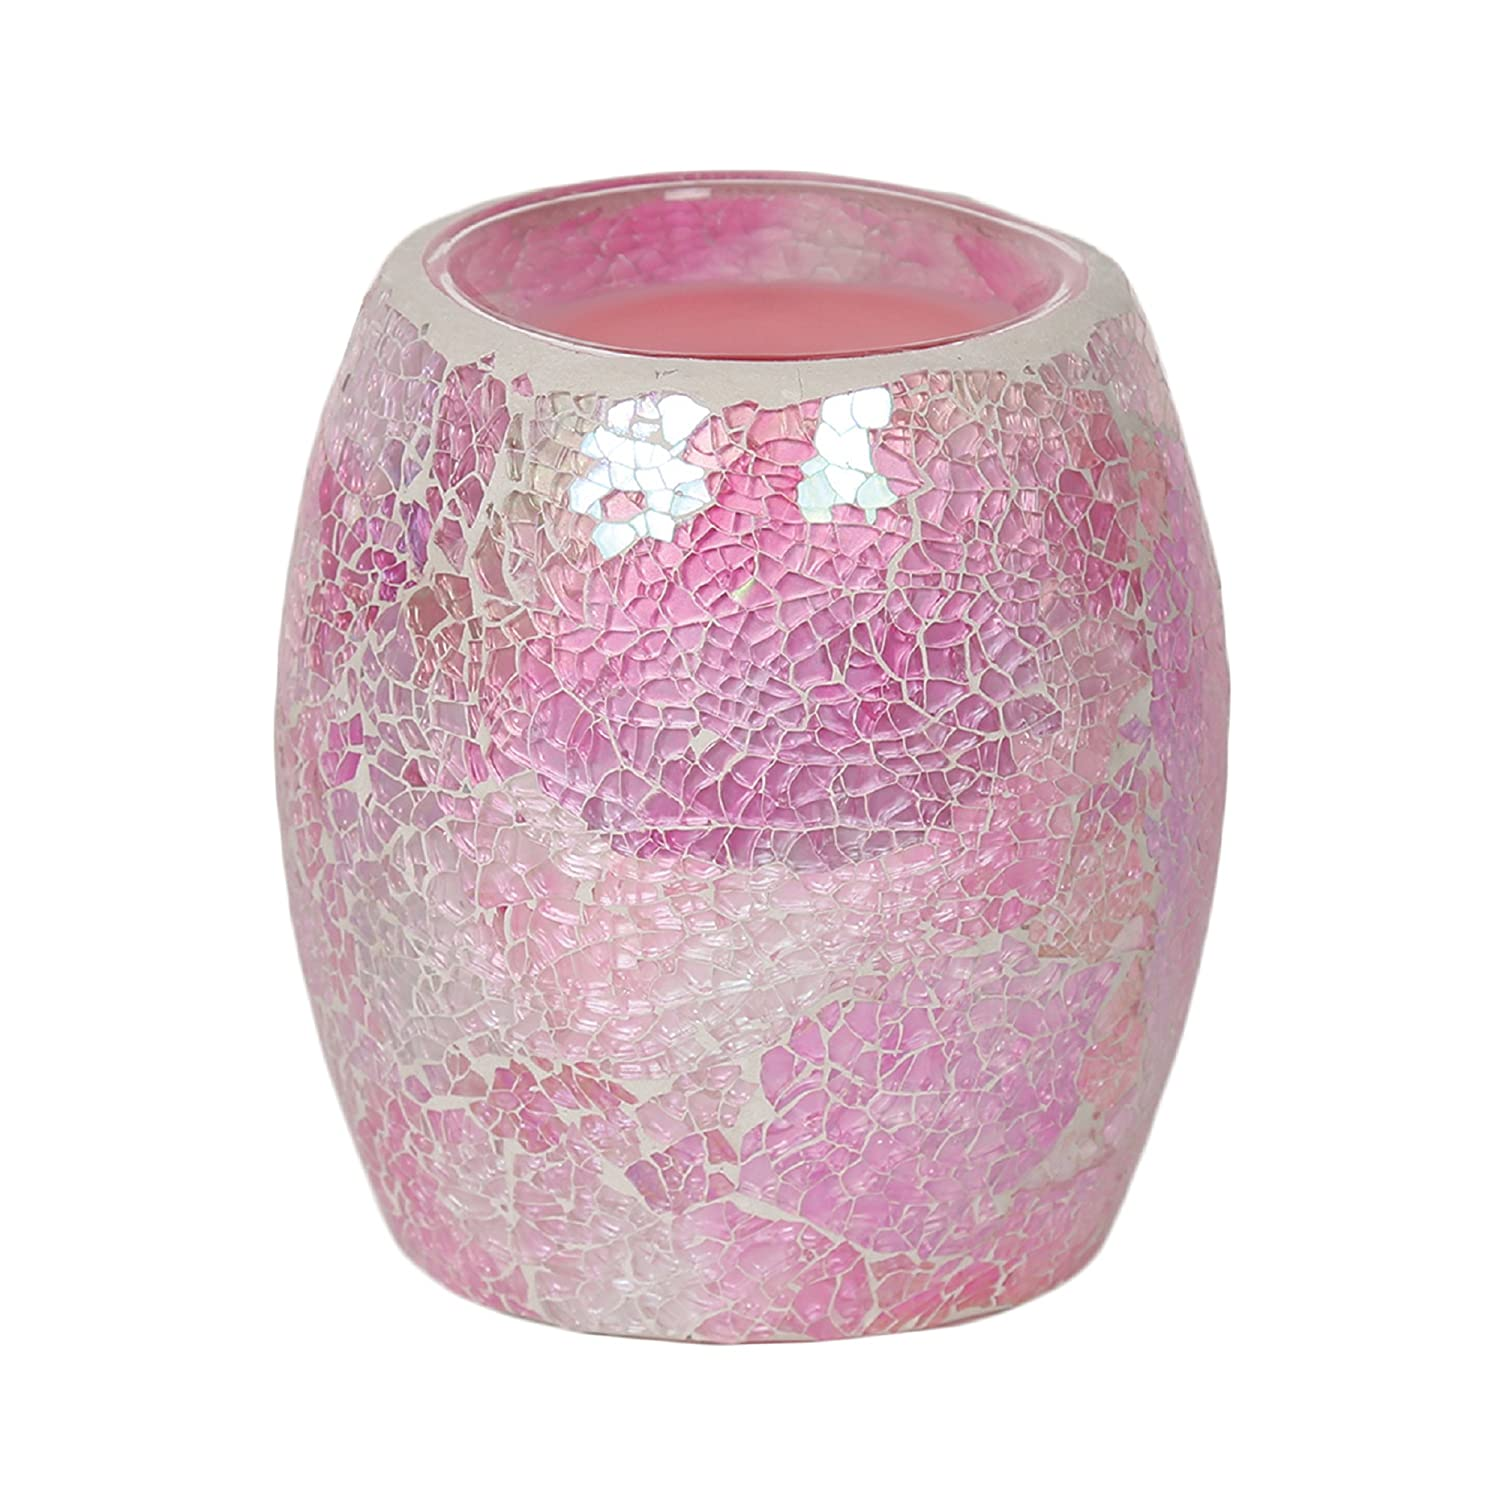 Aroma Accessories Brand New Pink Petals Electric Wax Melt Burner VC1069